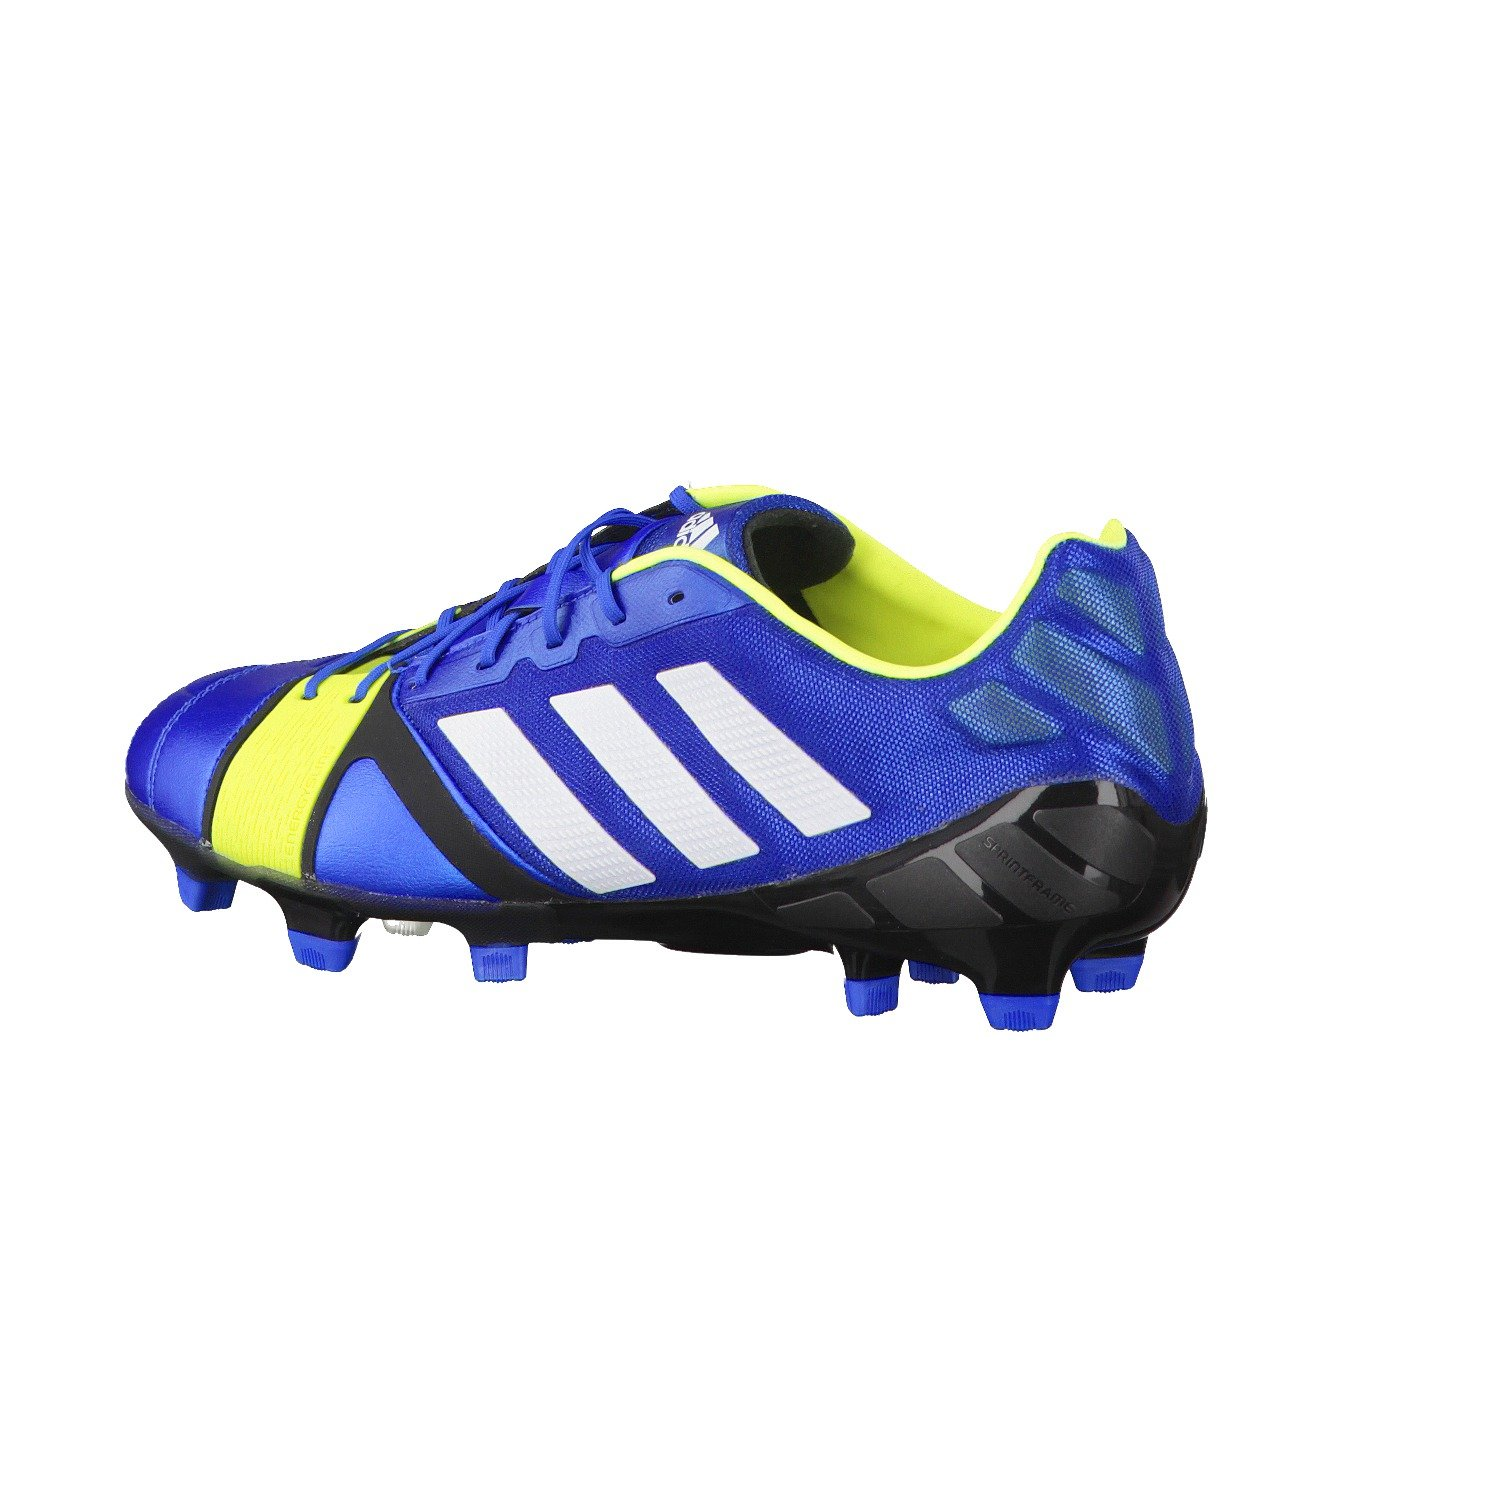 competitive price 2f1a4 0b3a6 adidas Nitrocharge 1.0 TRX FG   mi Coach Pack   Mens Football Boots L44753  Soccer Cleats  Amazon.co.uk  Sports   Outdoors